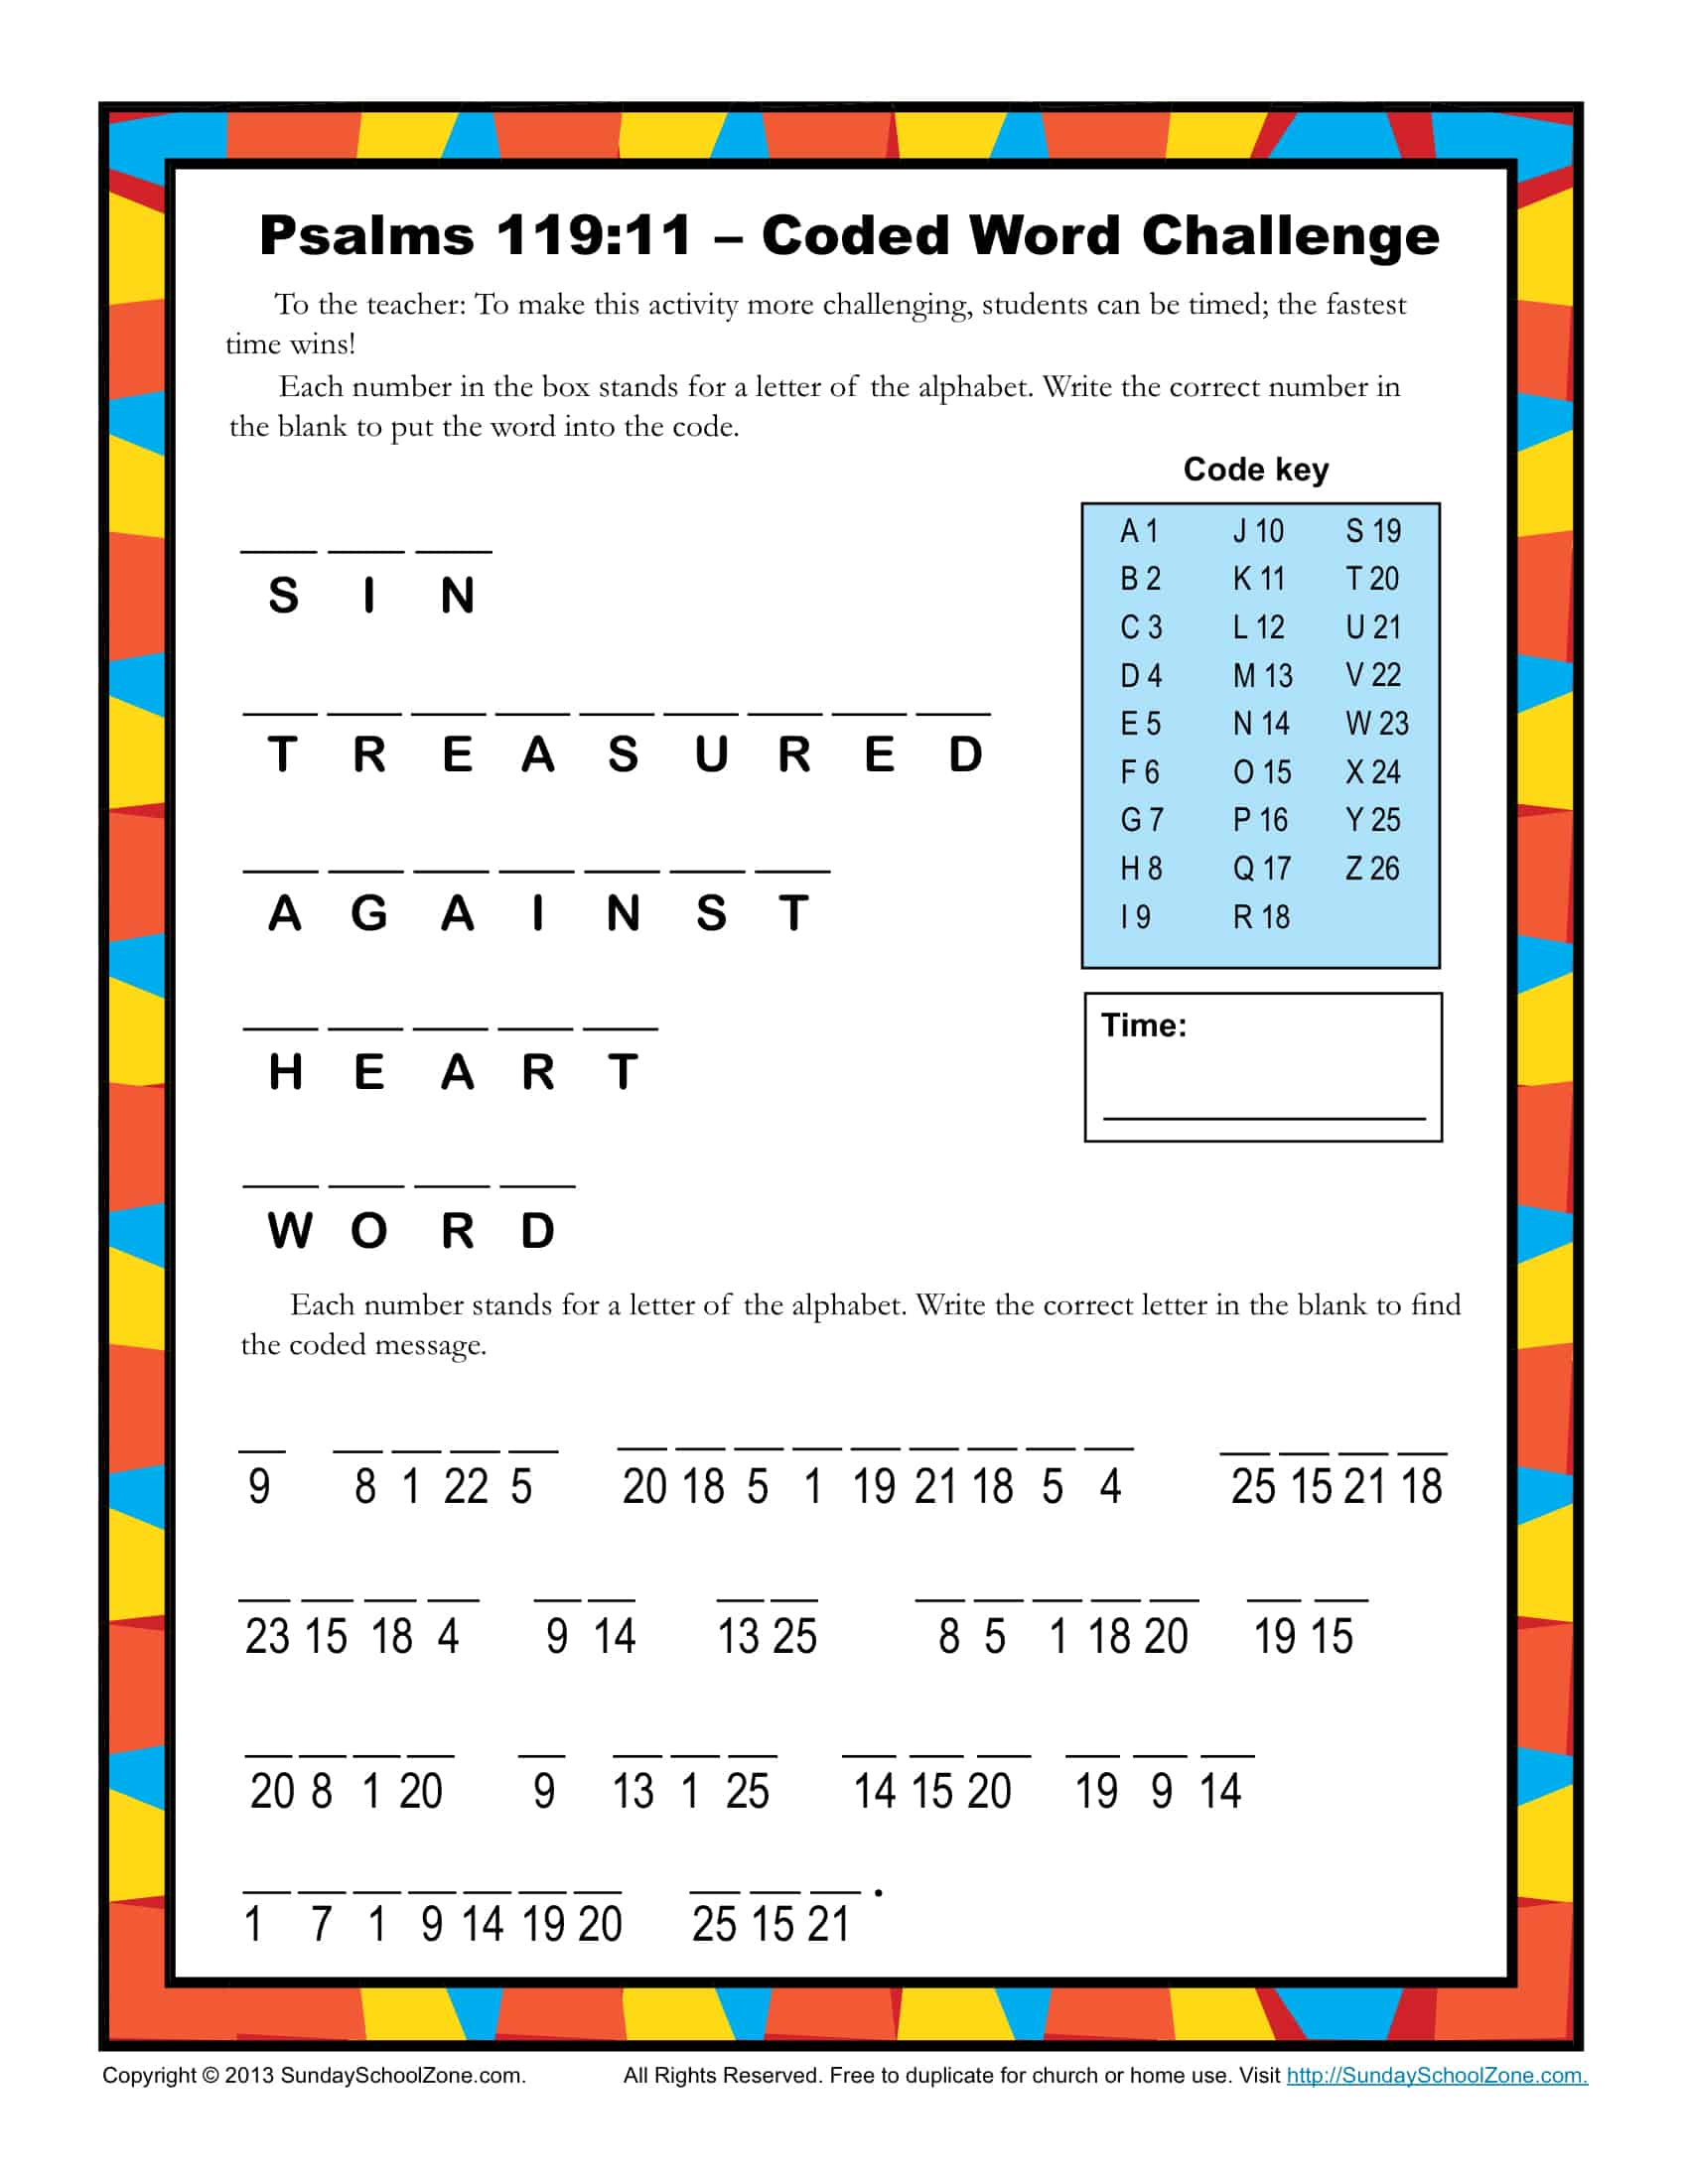 Psalm 119 11 Coded Word Activity